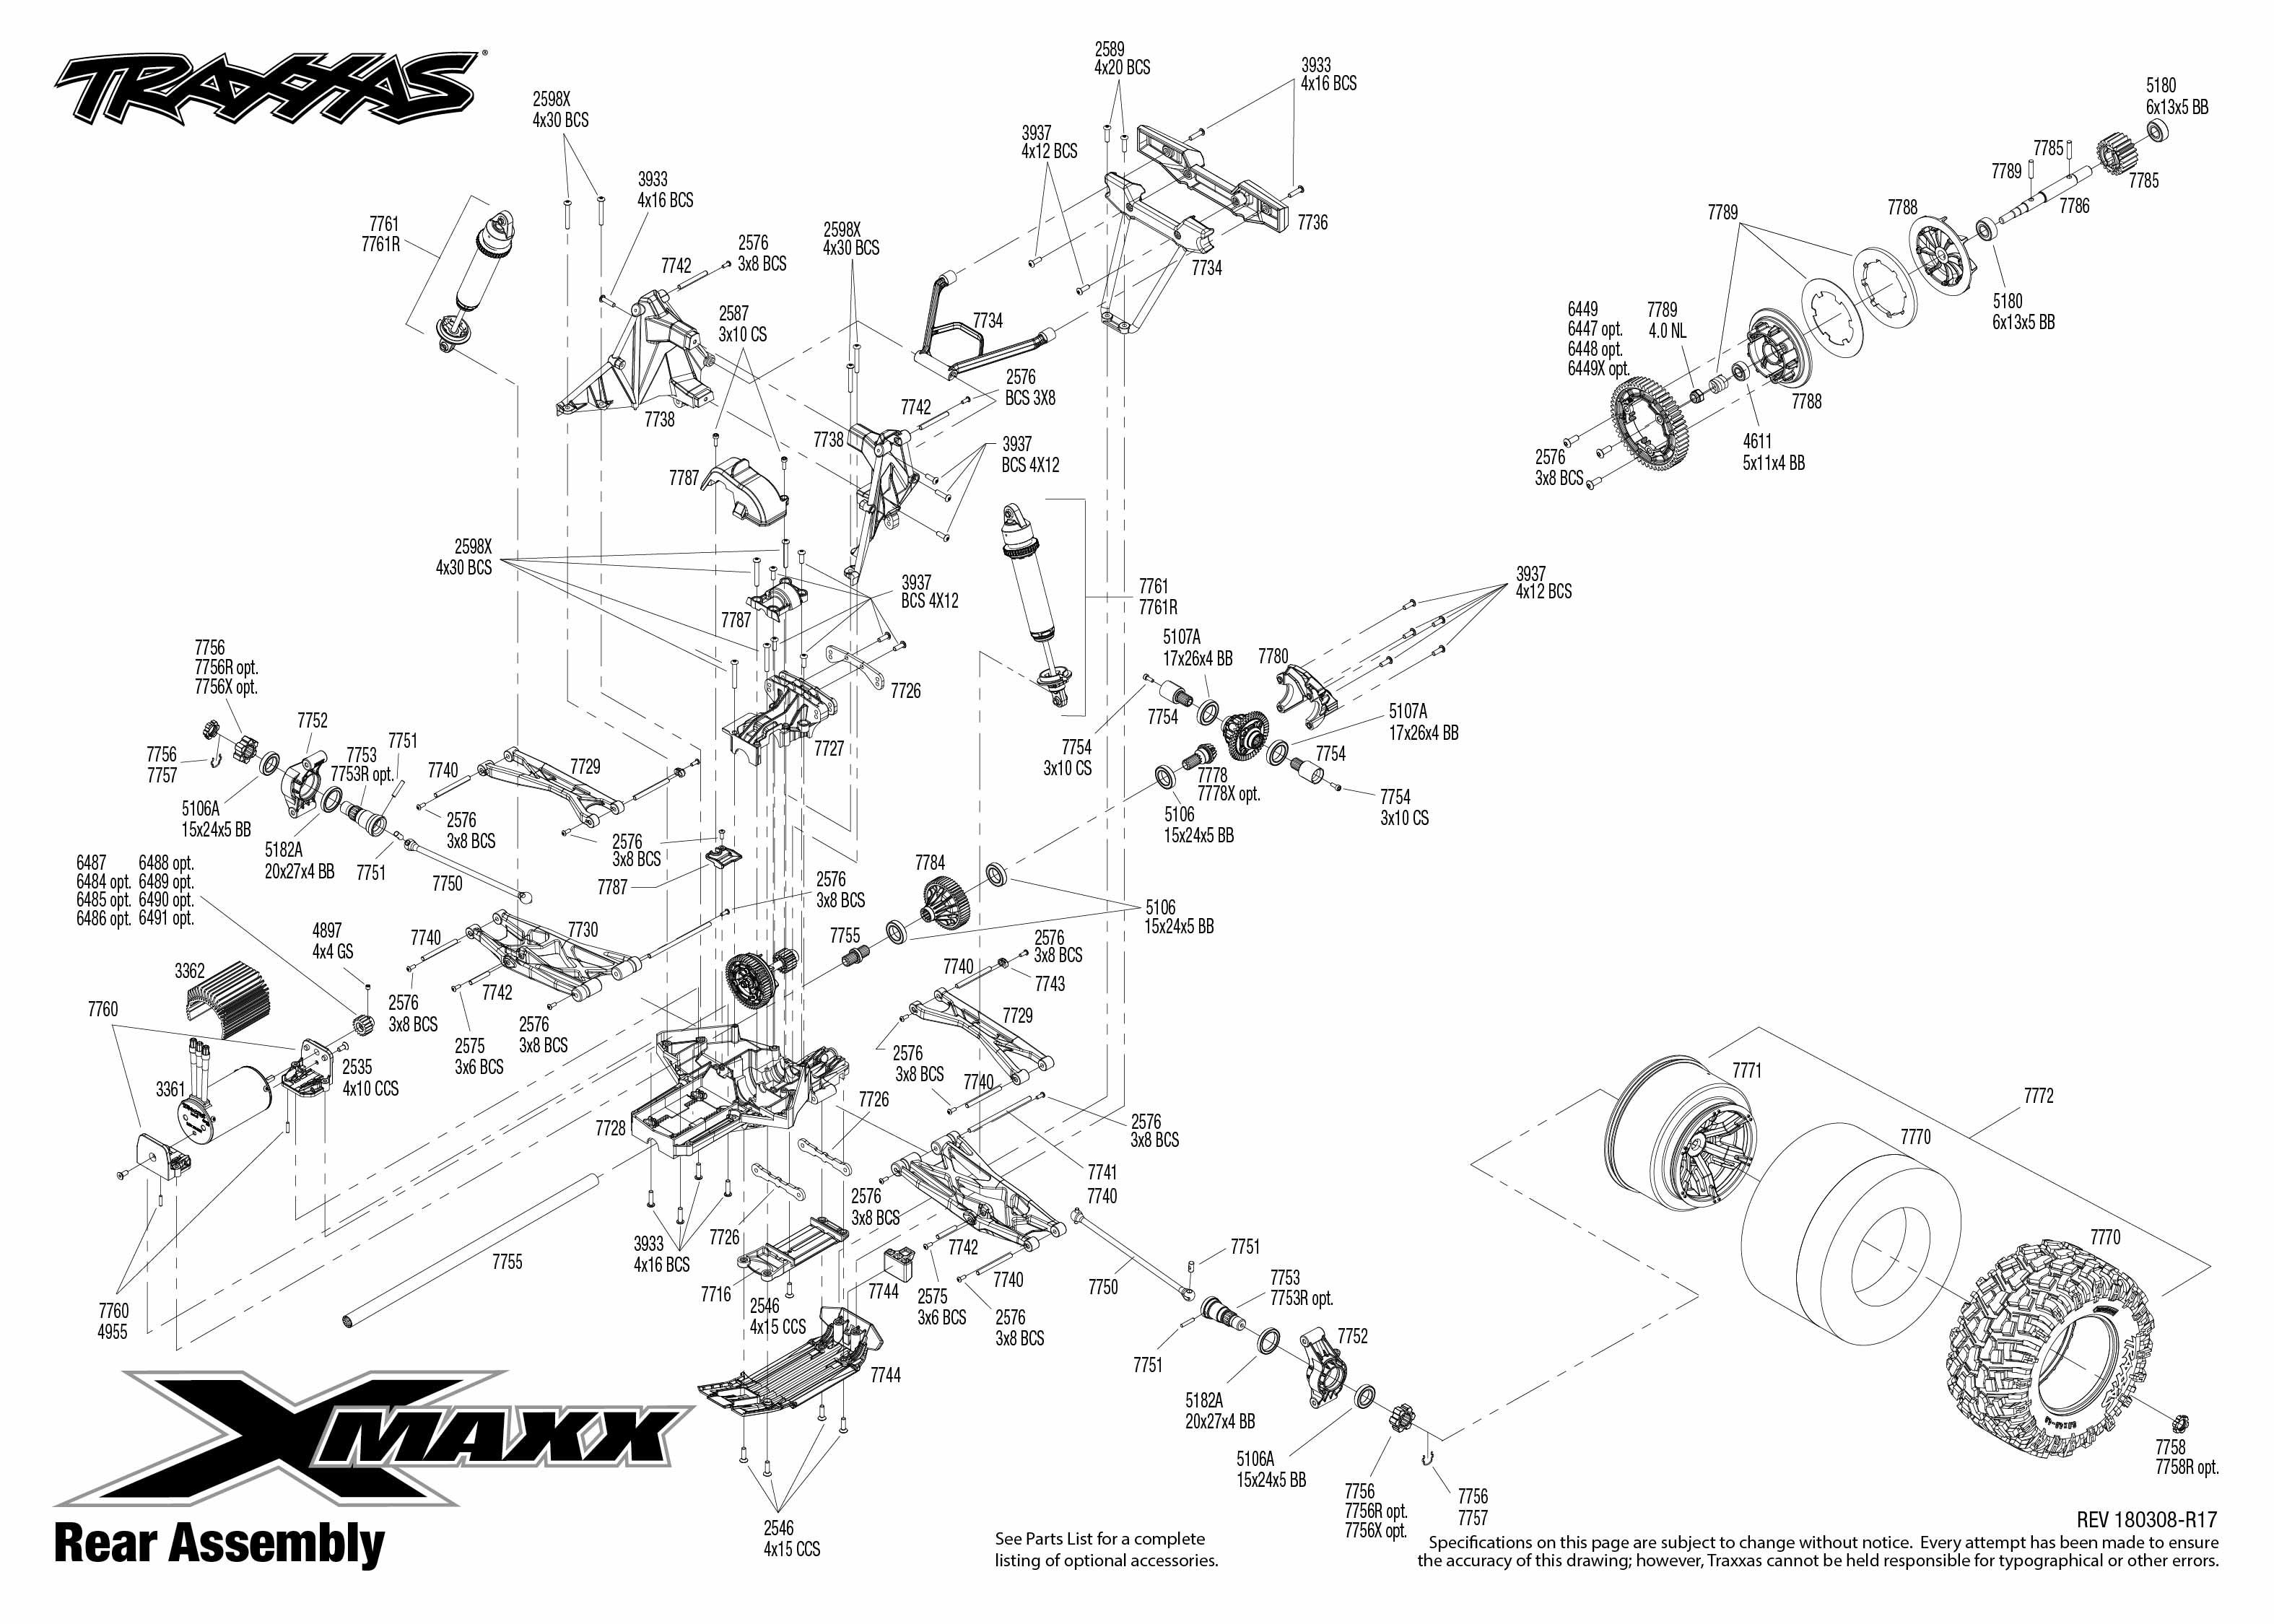 Traxxas t maxx 2.5 manual pdf